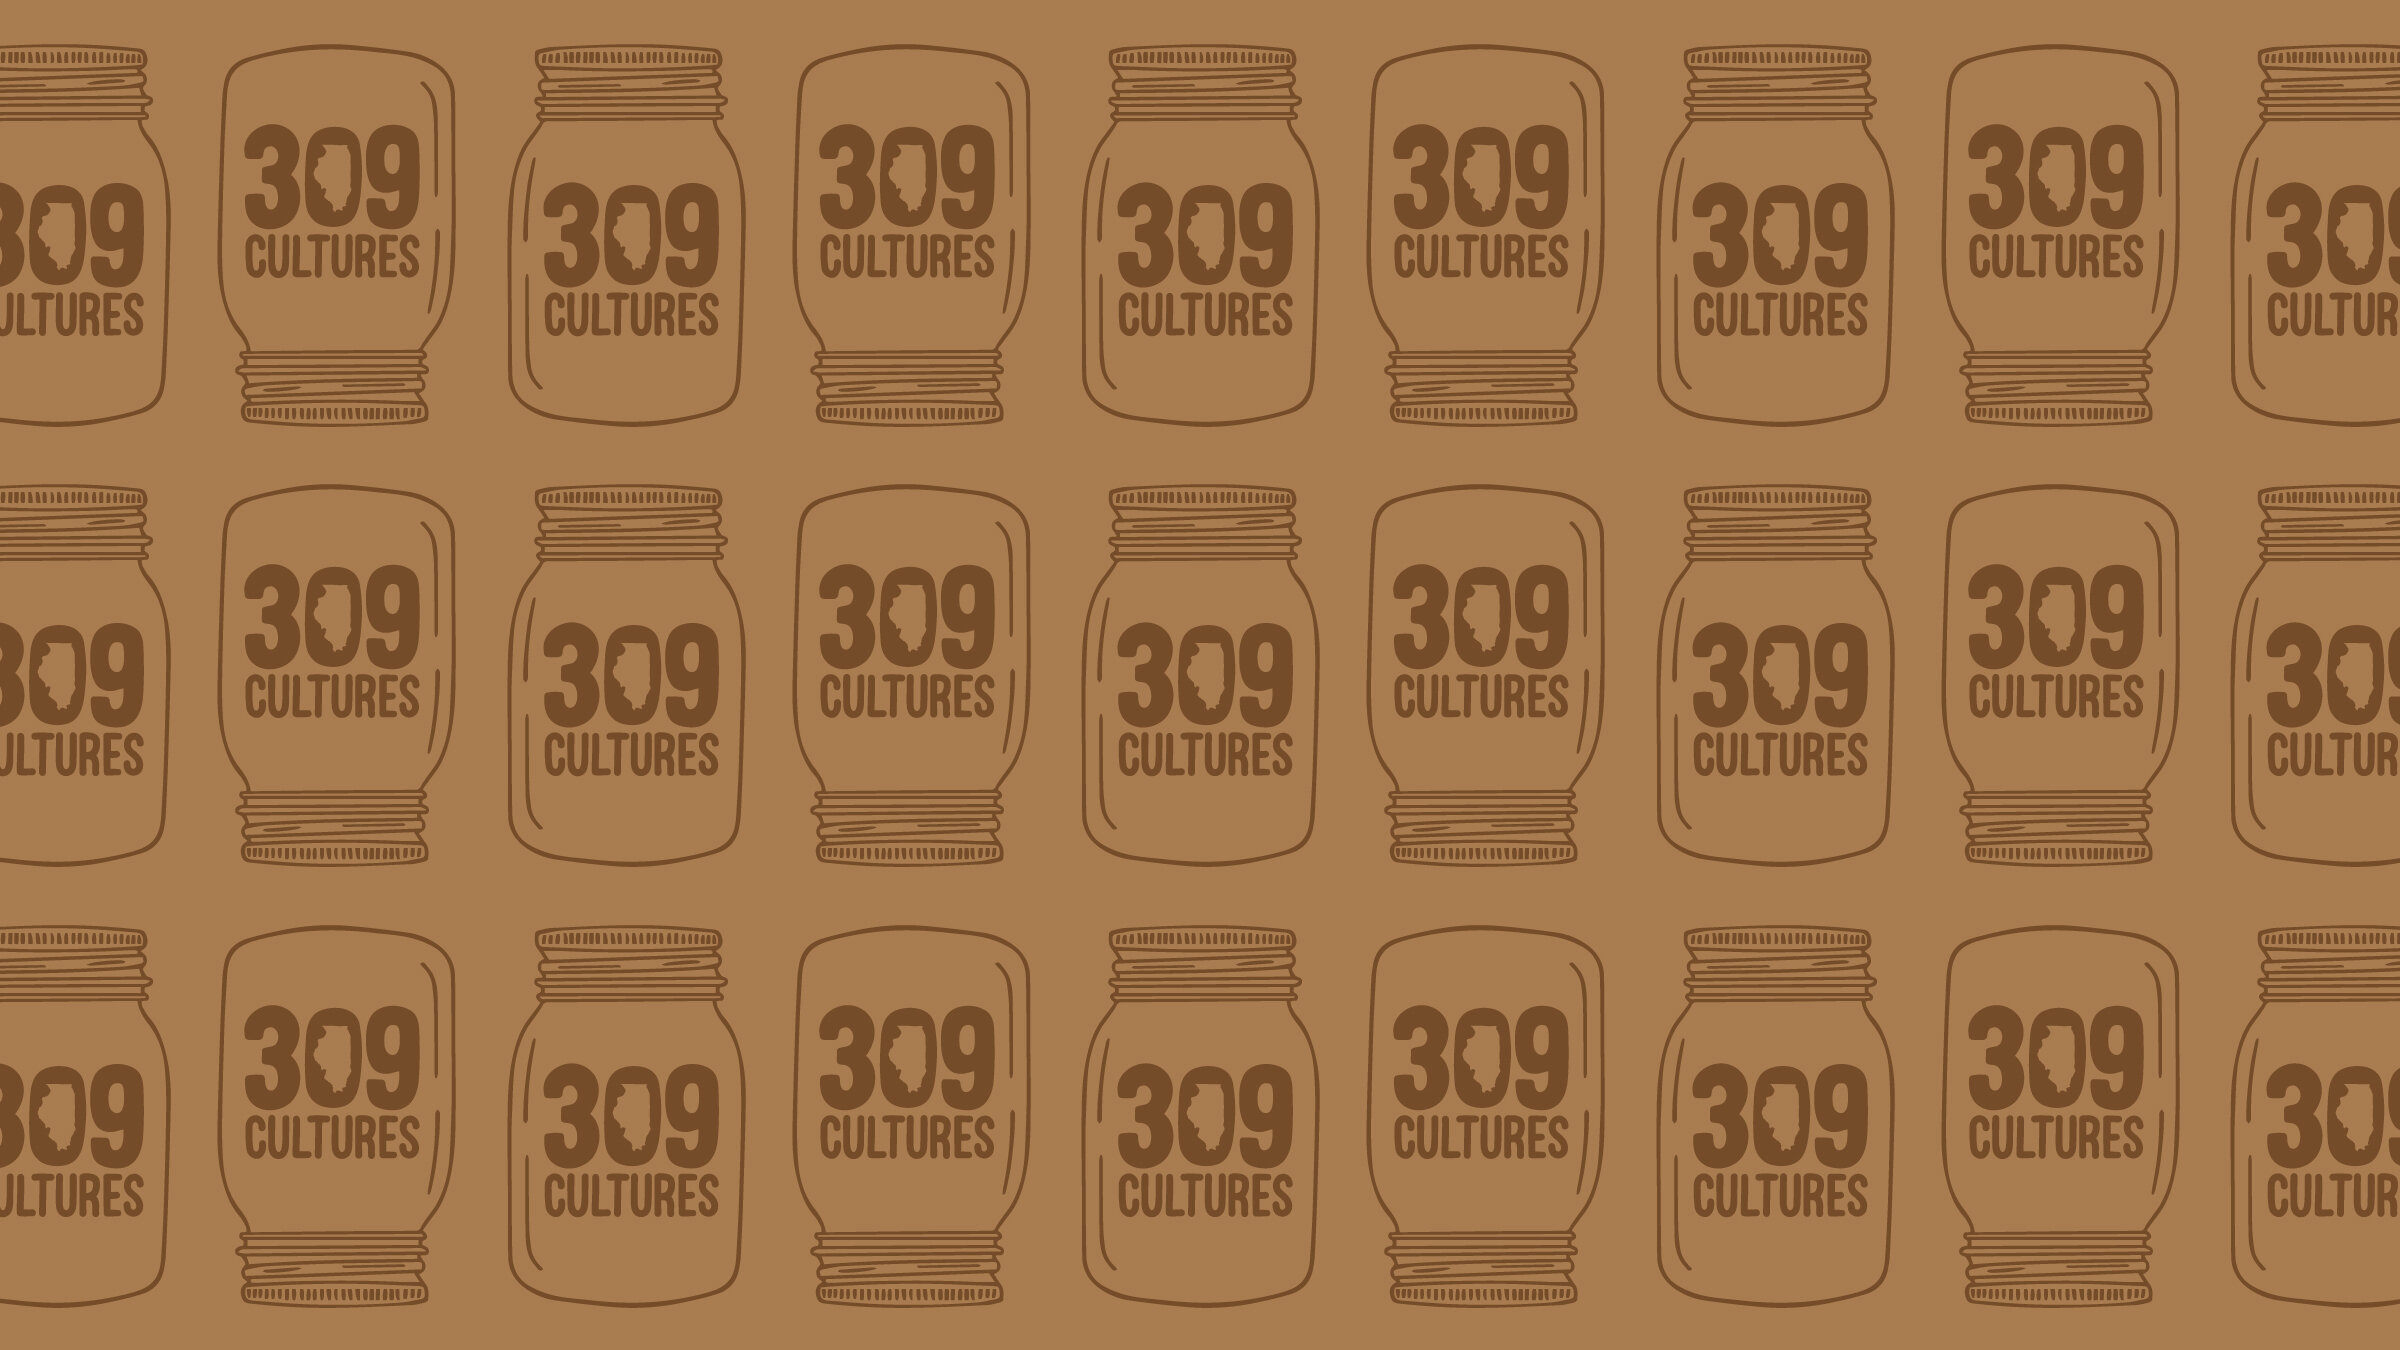 Pattern made from the 309 Cultures logo and hand-drawn mason jar graphic